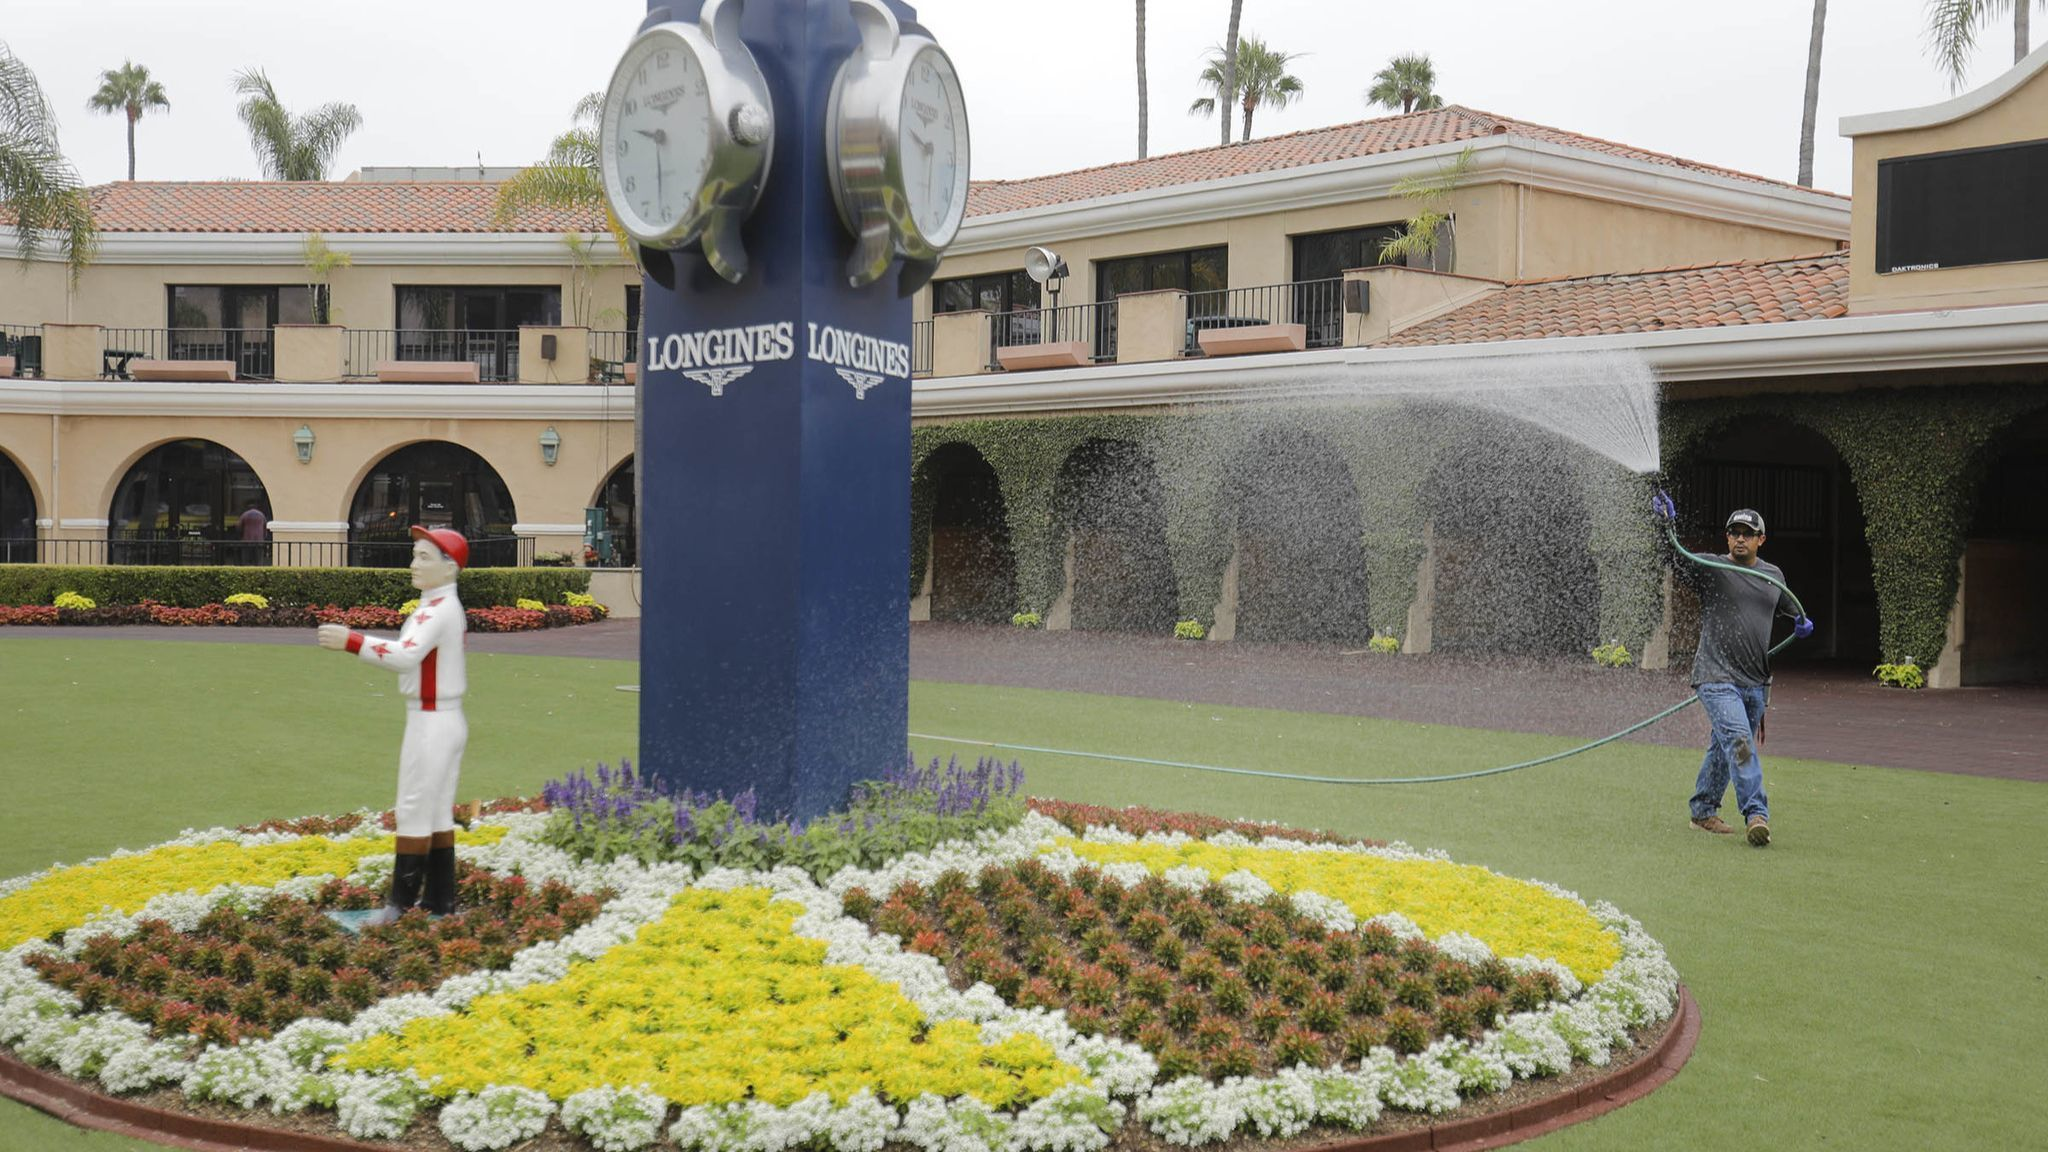 Parti-mutuel workers get new agreement, won't strike at Del Mar | San Diego Union Tribune